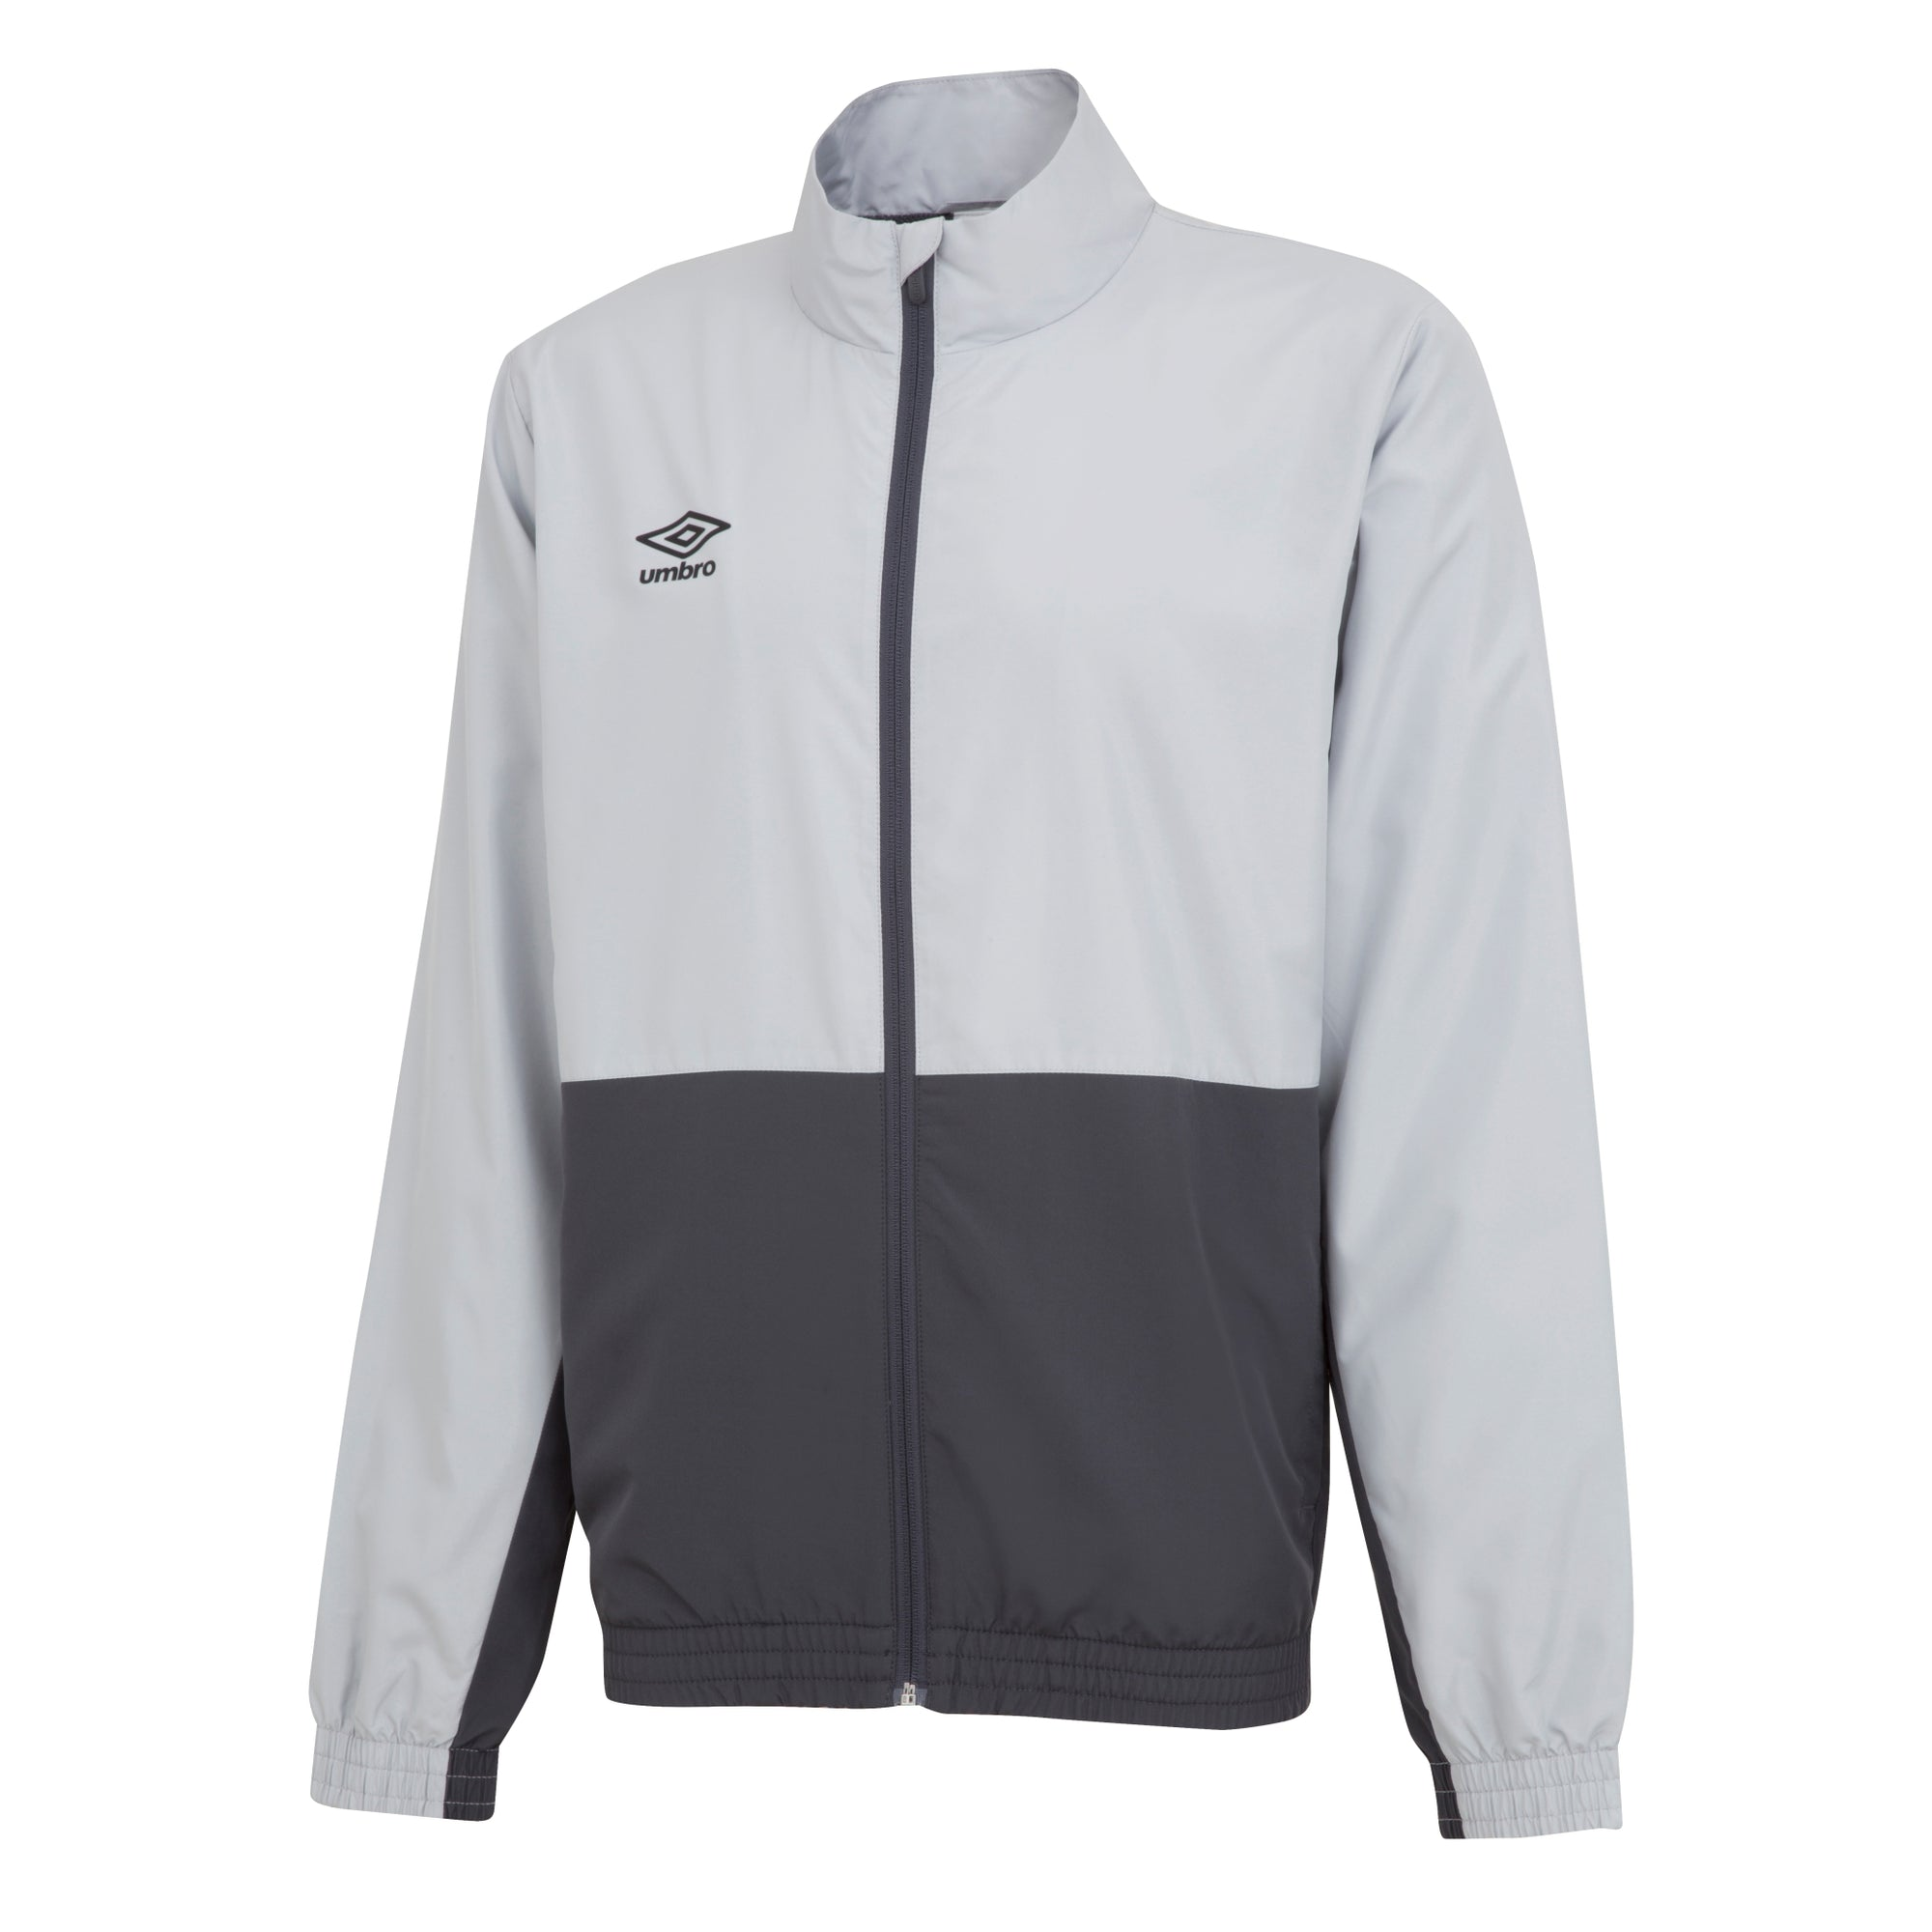 Umbro Training Woven Jacket - High Rise/Carbon